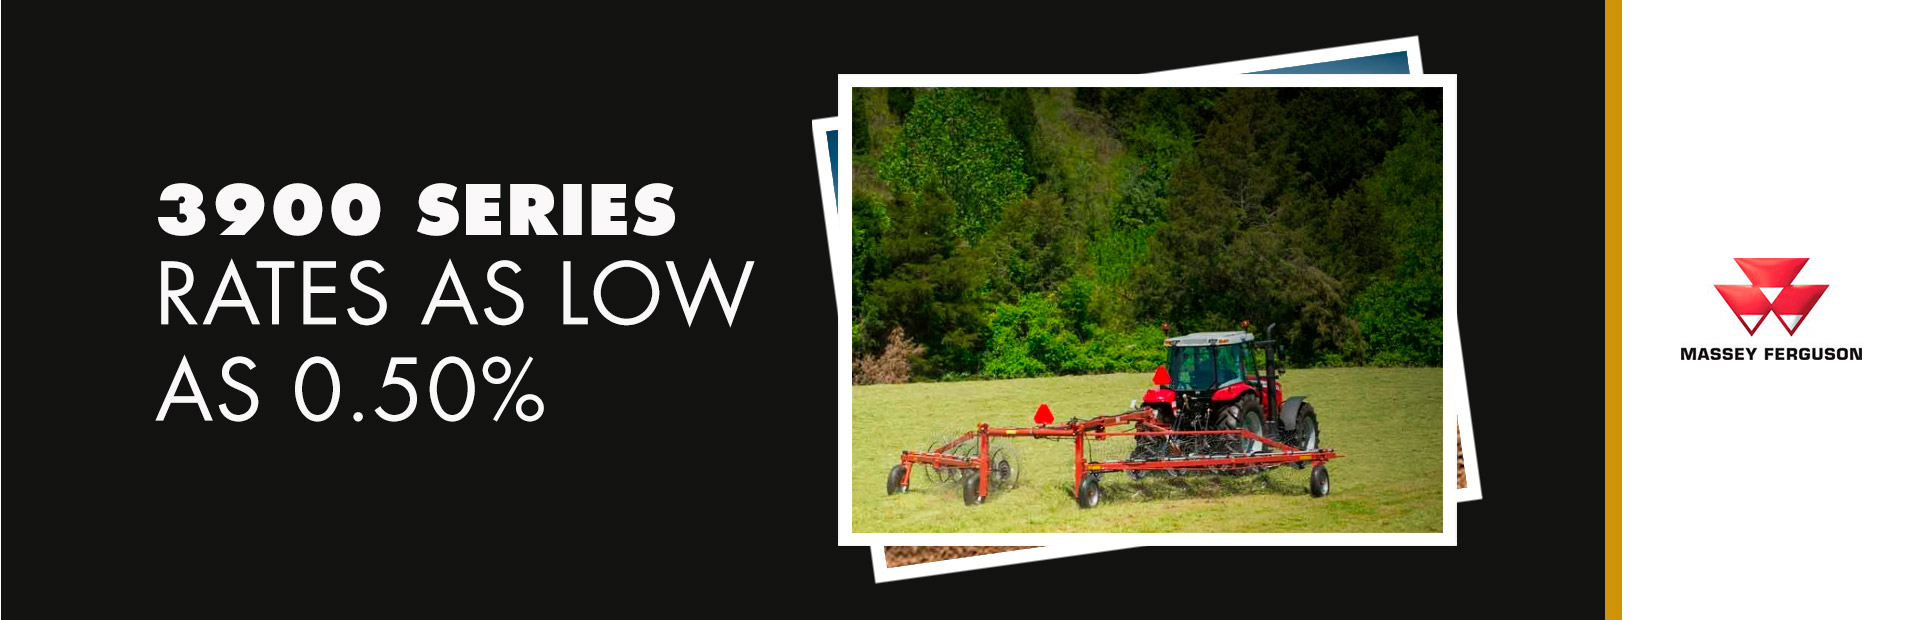 Massey Ferguson: 3900 Series - Rates as low as 0.50%